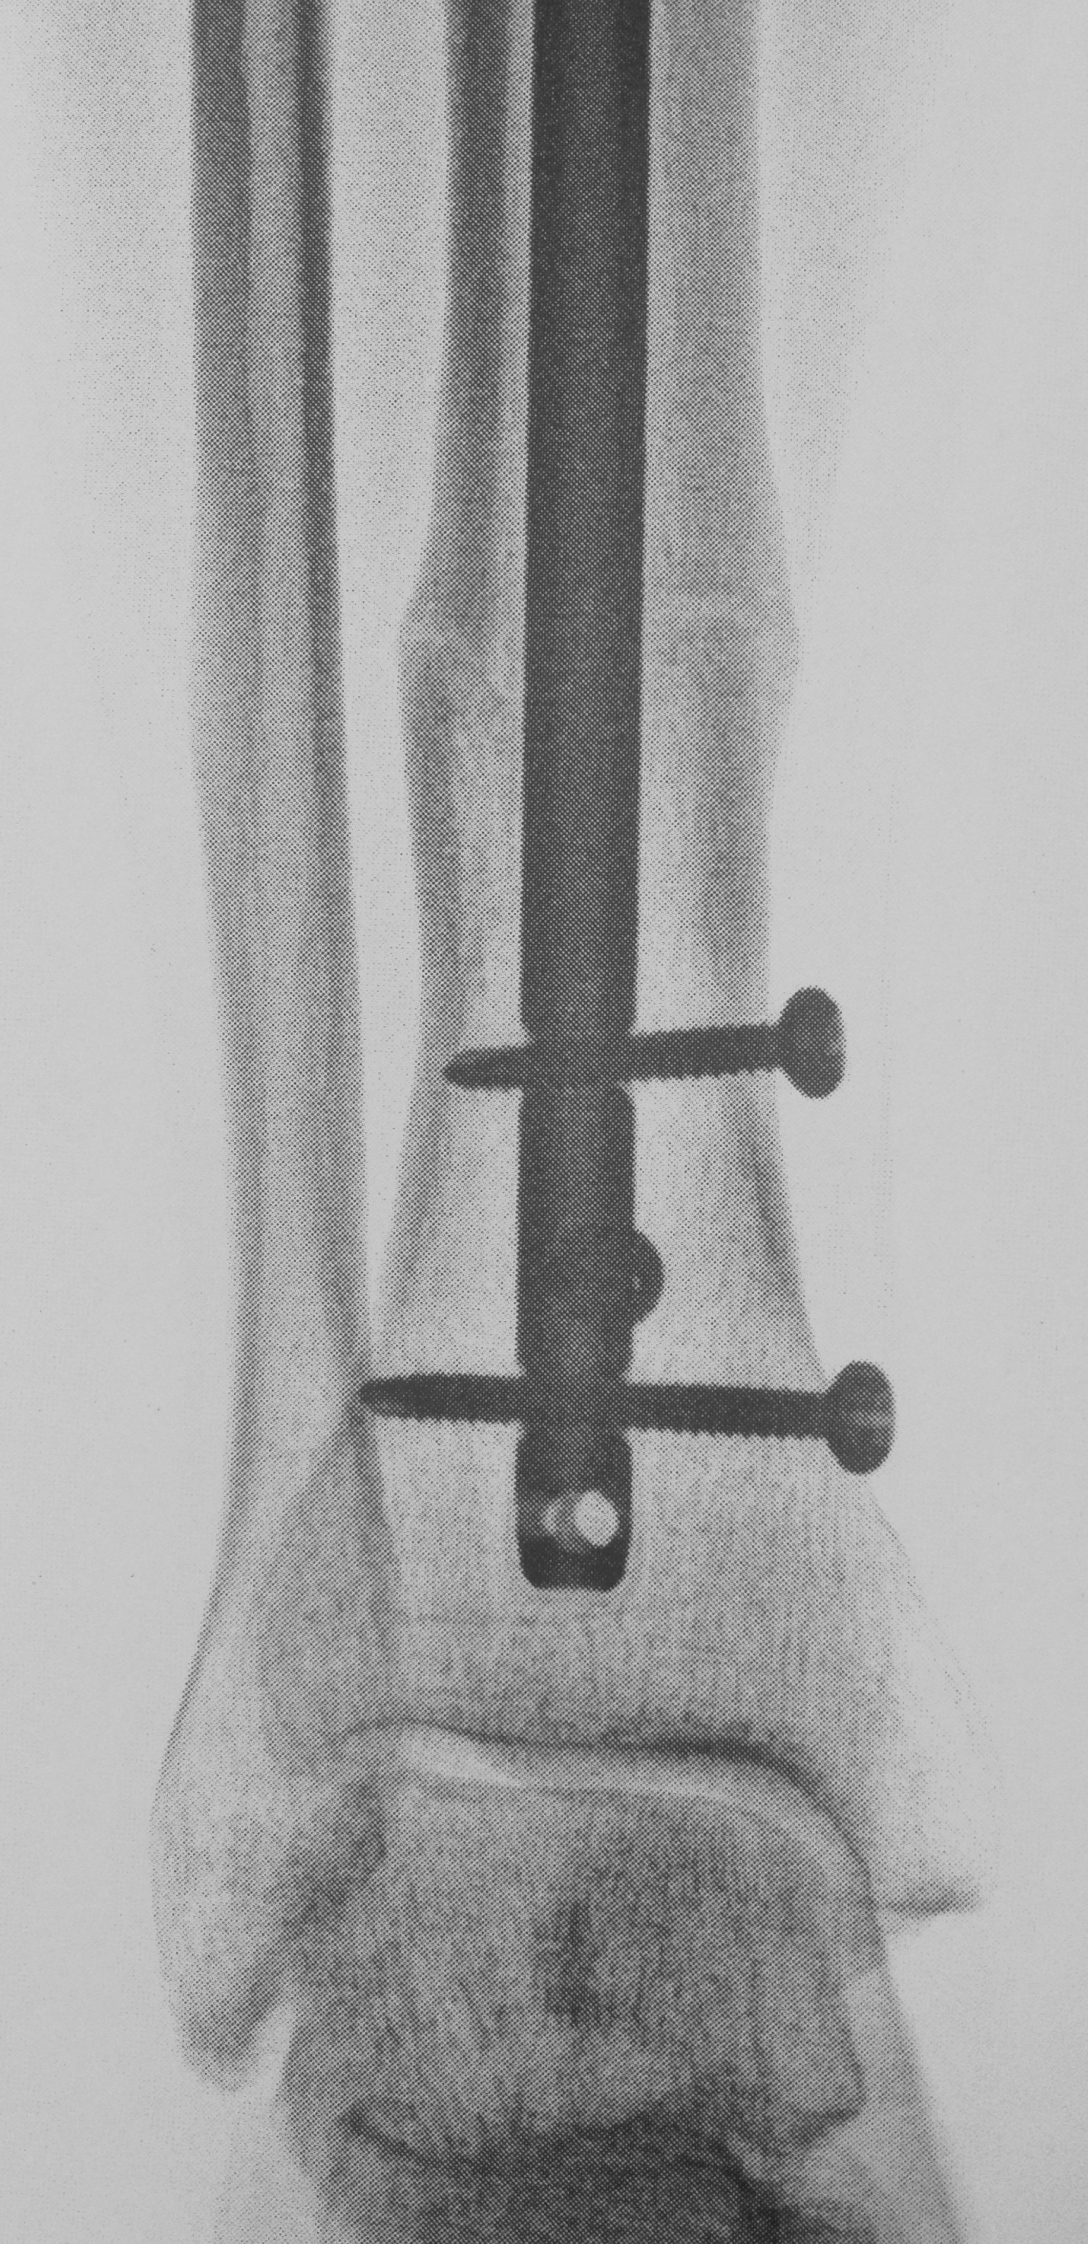 Screws soon to be removed